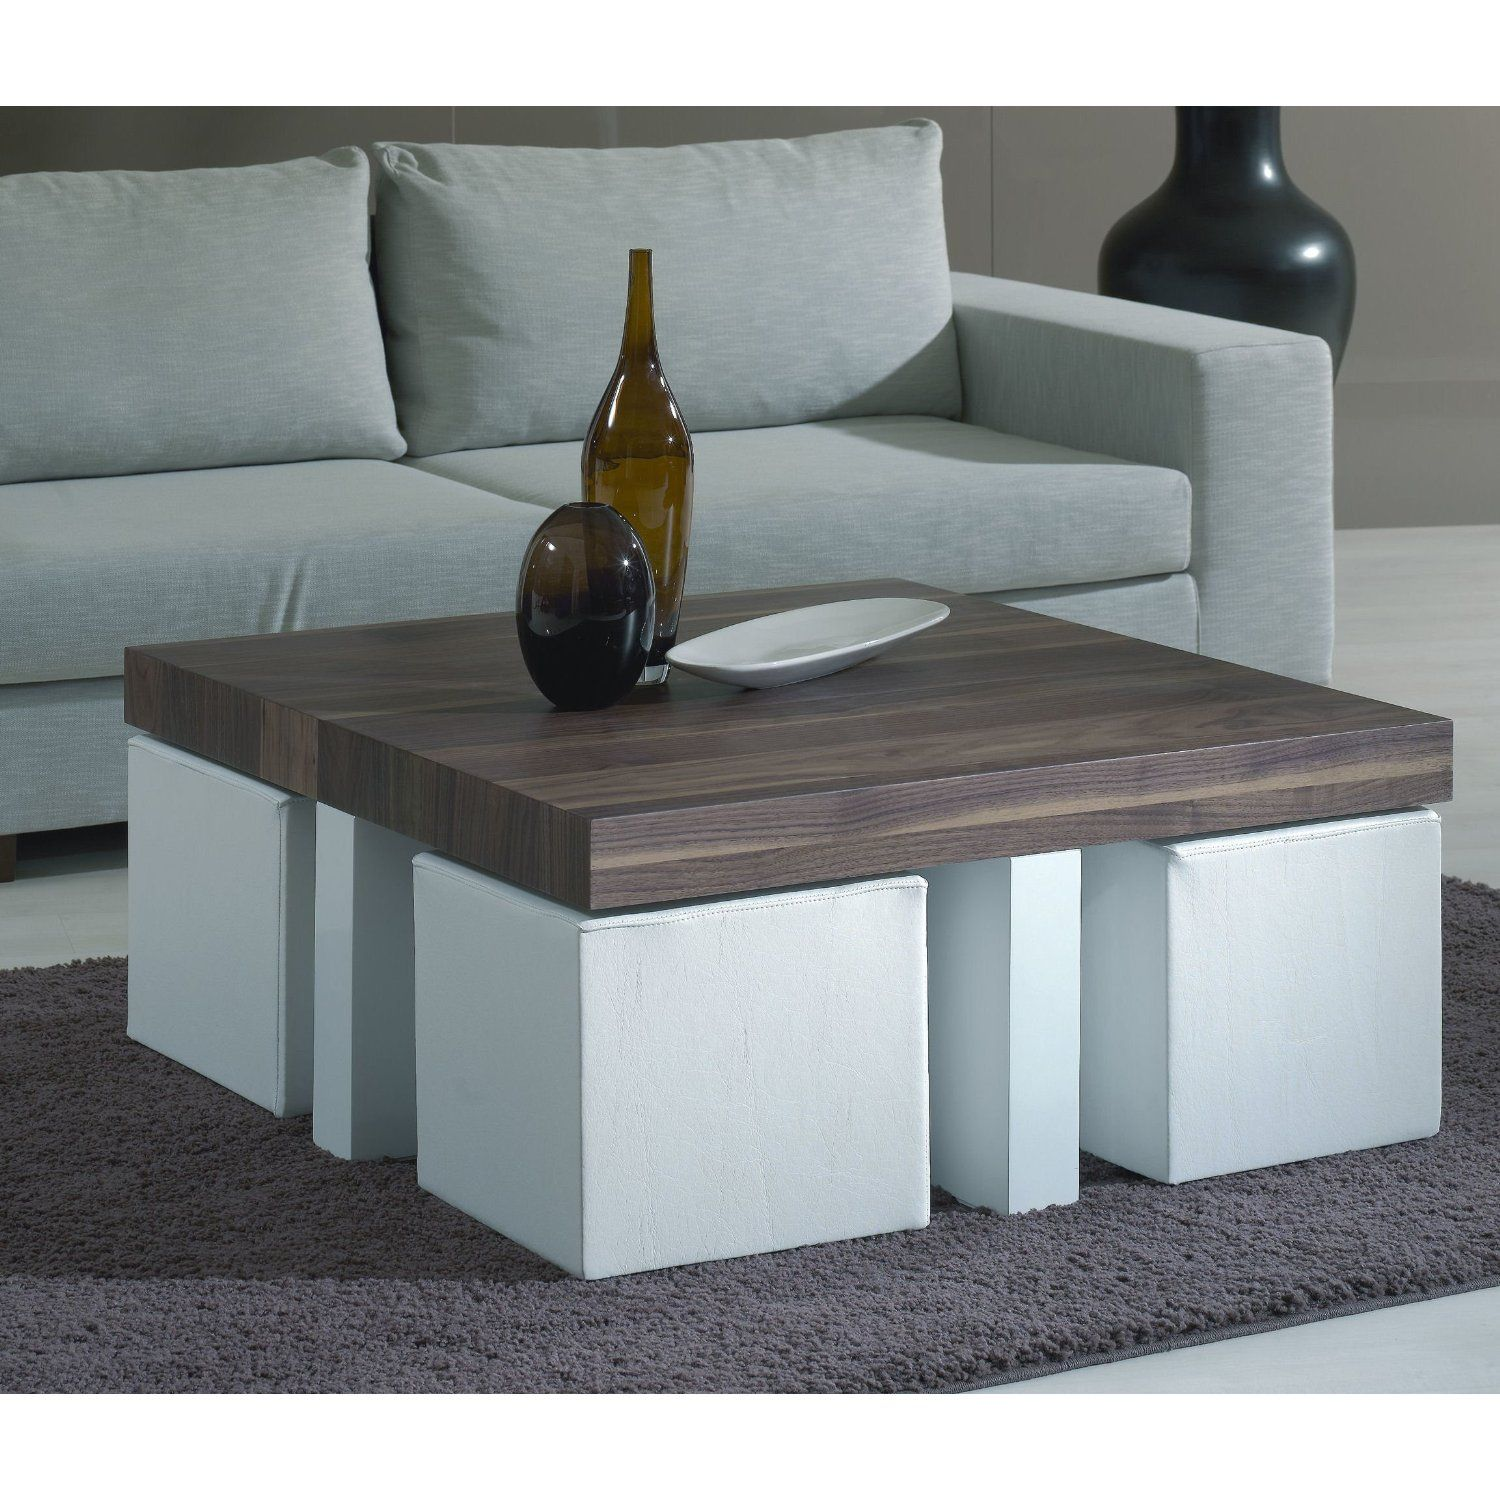 Coffee table with stools love this idea for stools tucked under a